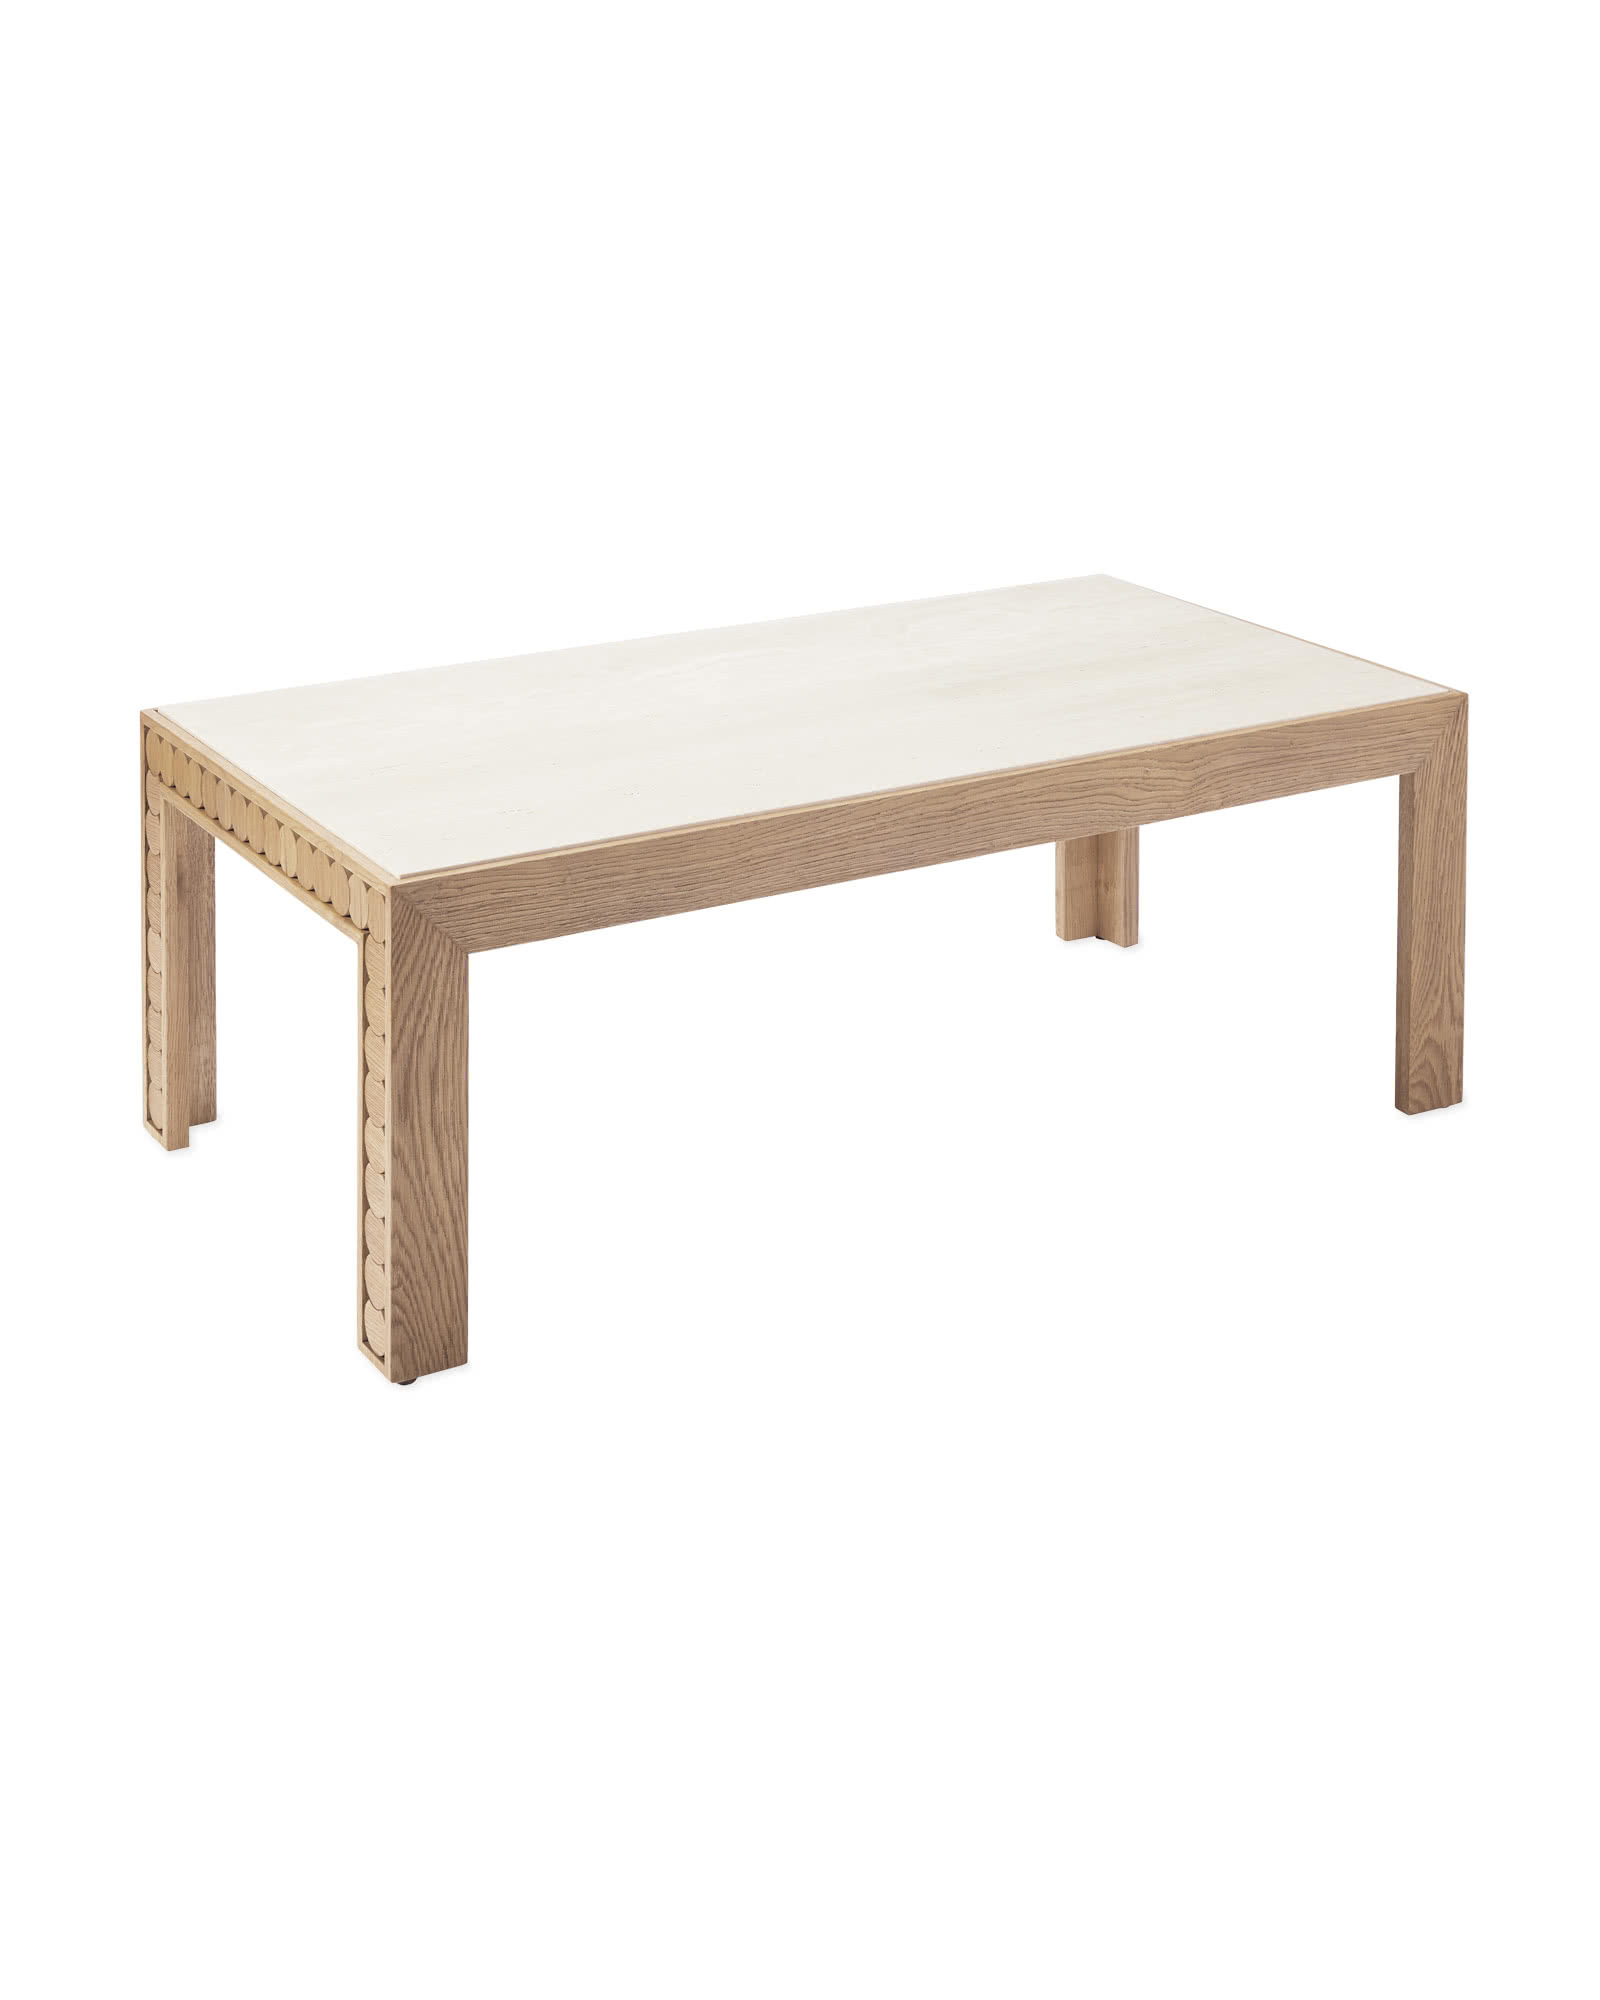 Ashbury Coffee Table,